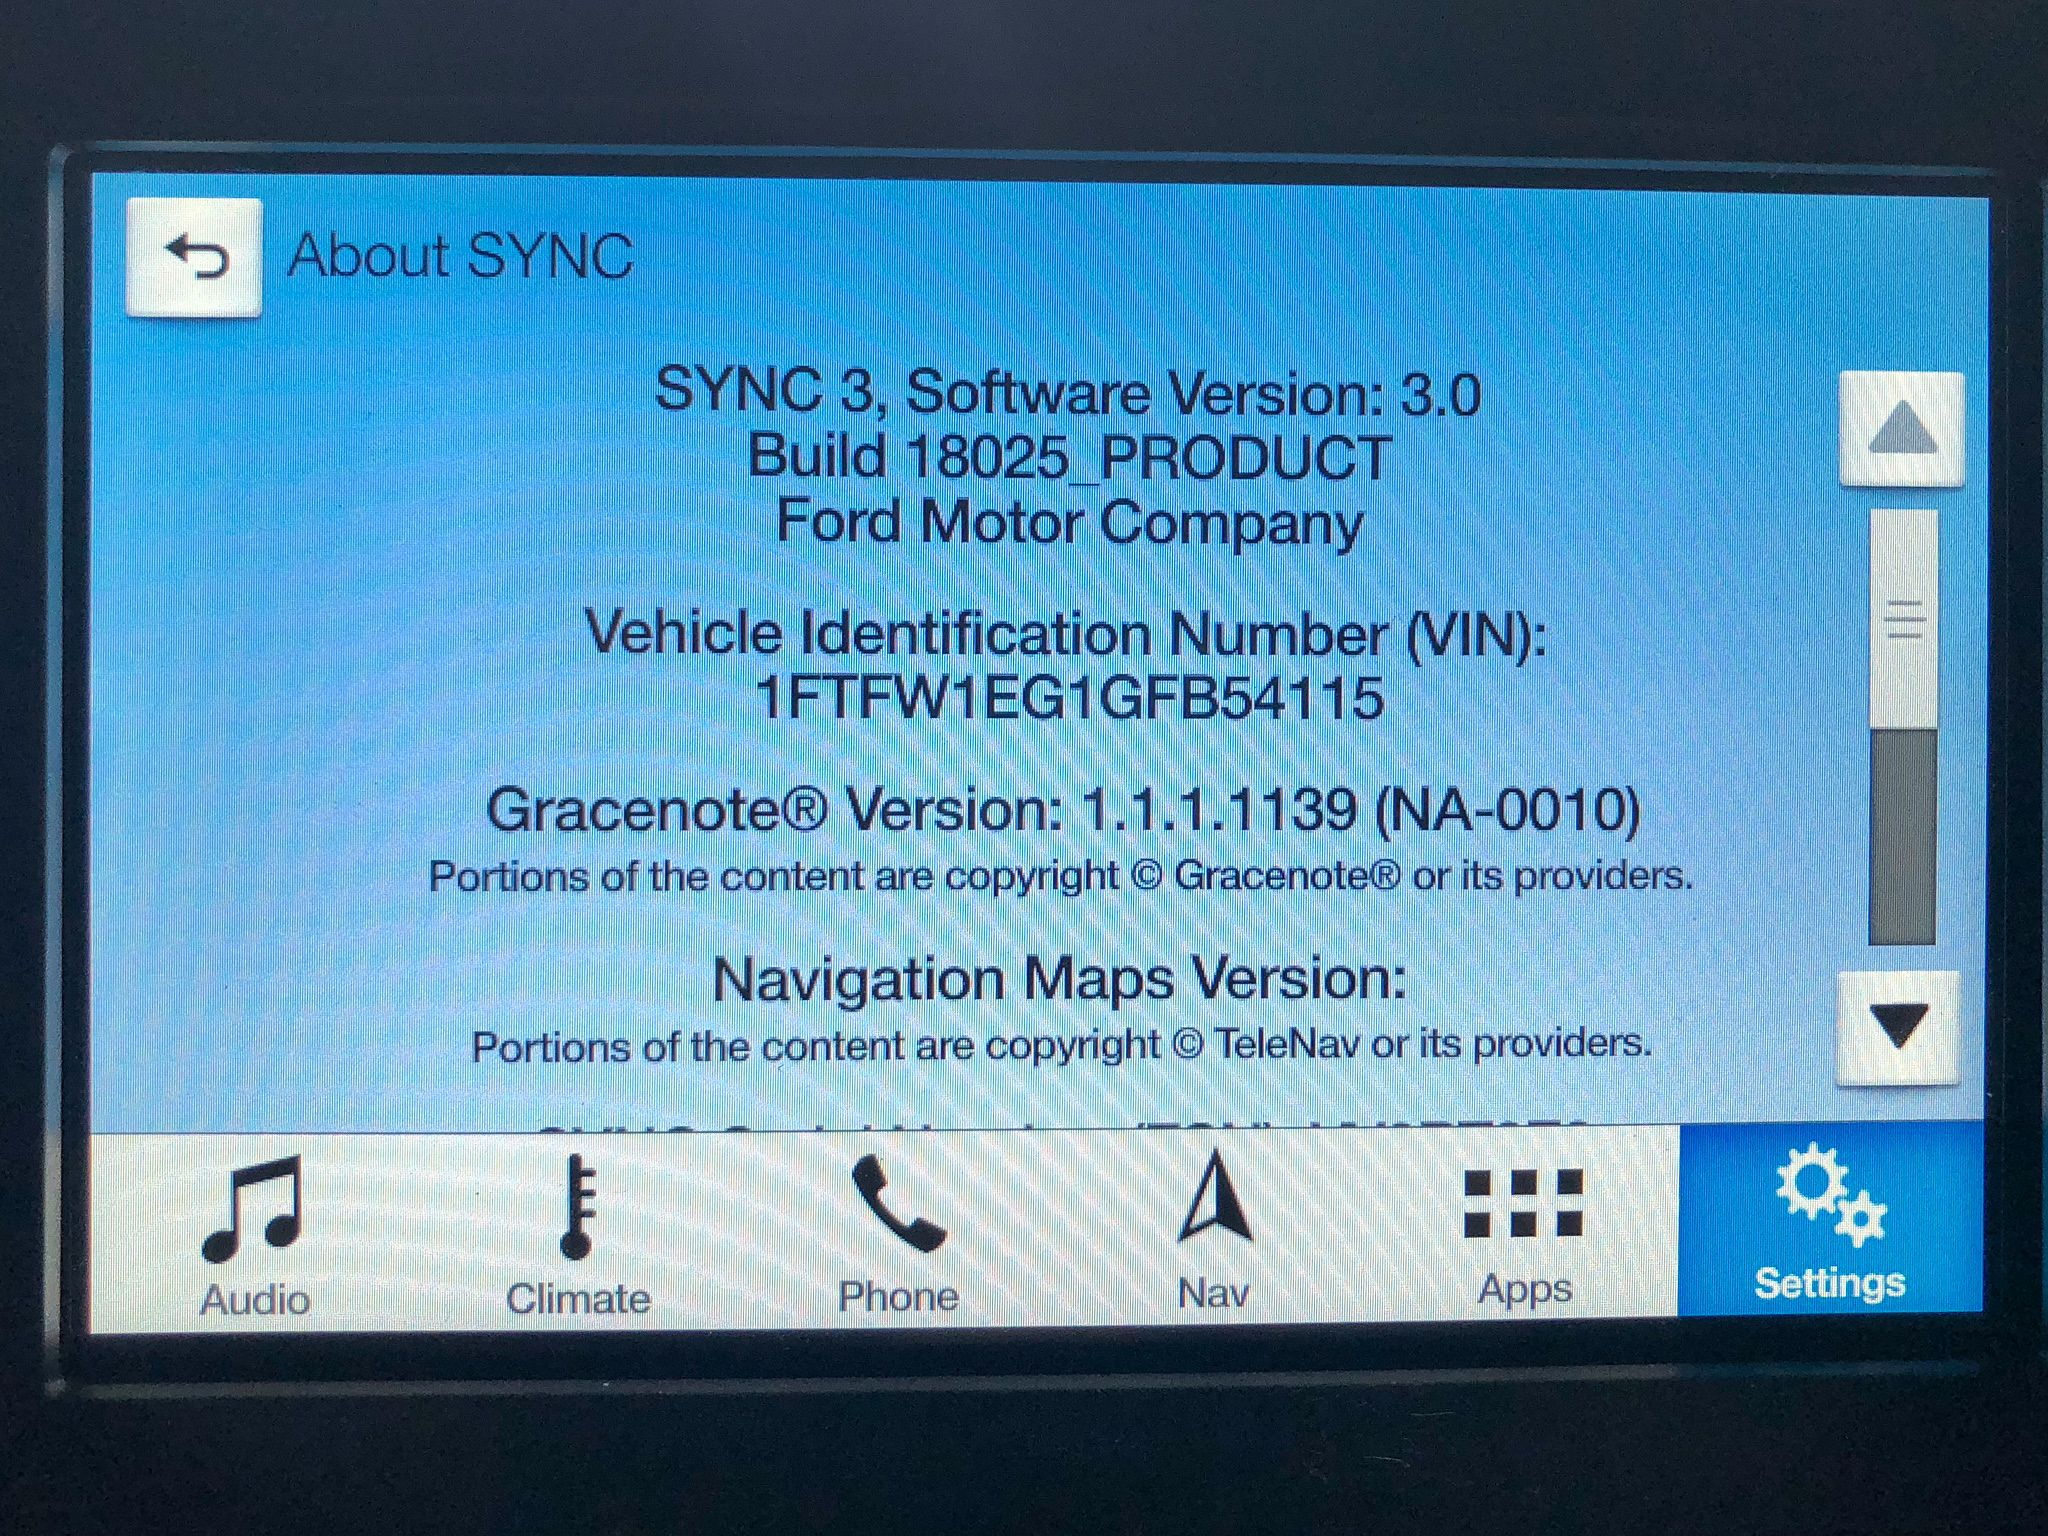 Ford SYNC3 Version 3.0